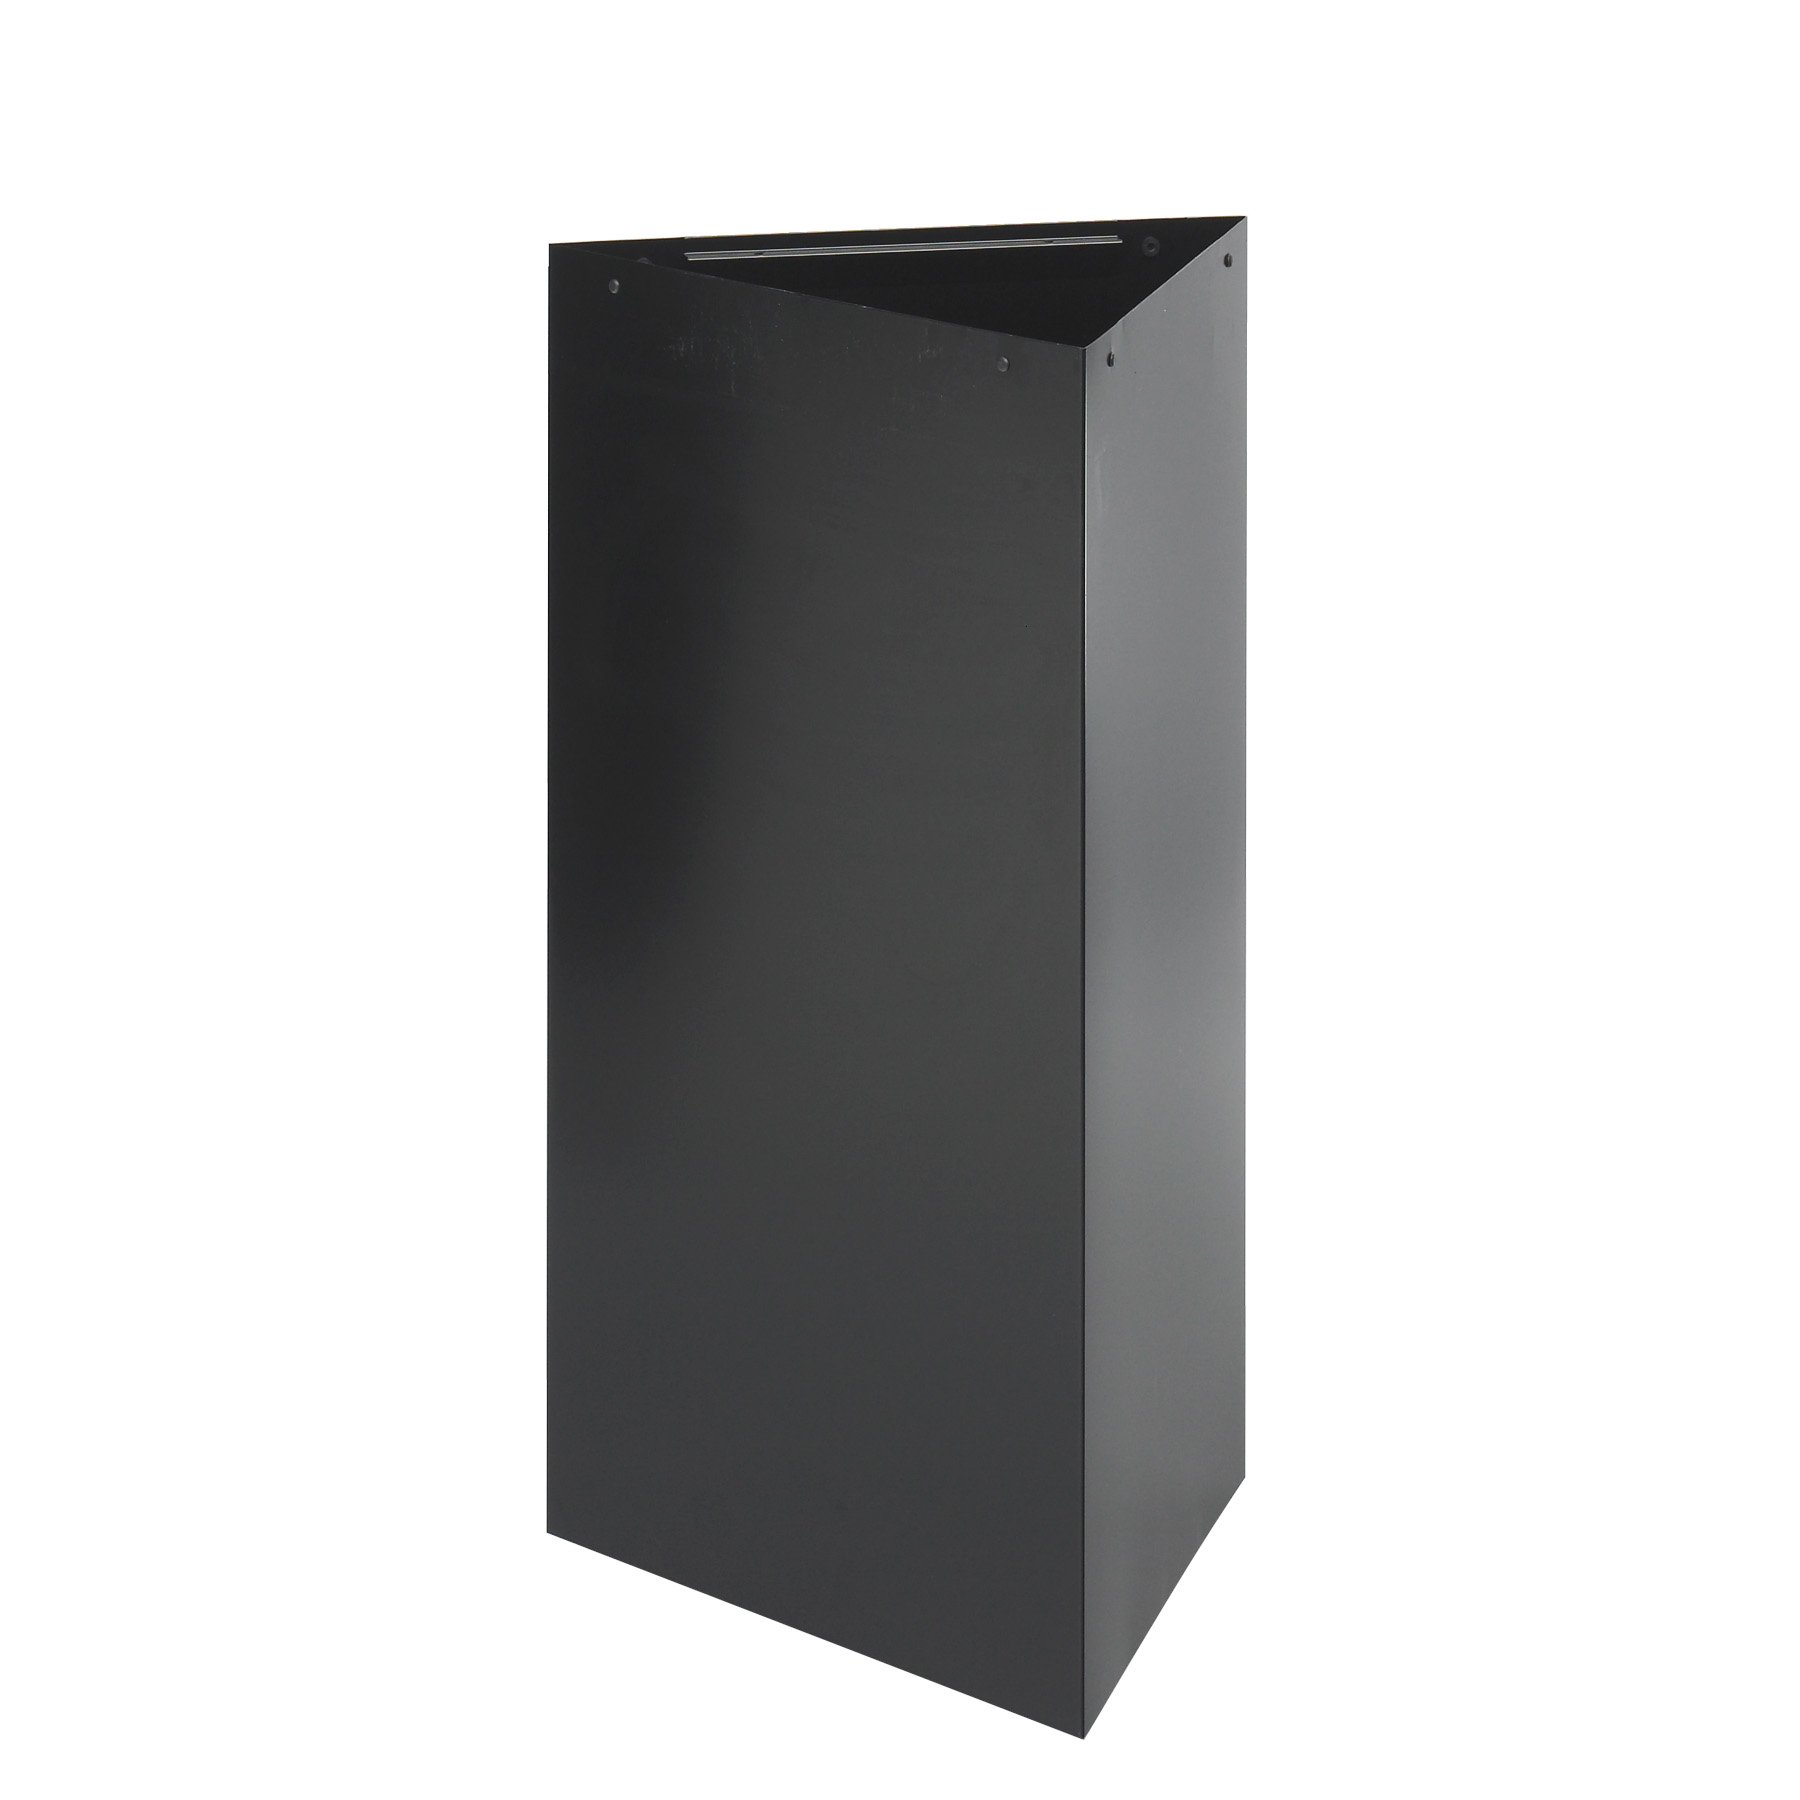 Safco Products 9552BL Trifecta Waste Receptacle 34'' High Base (Trifecta Lid sold separately), 19-Gallon, Black